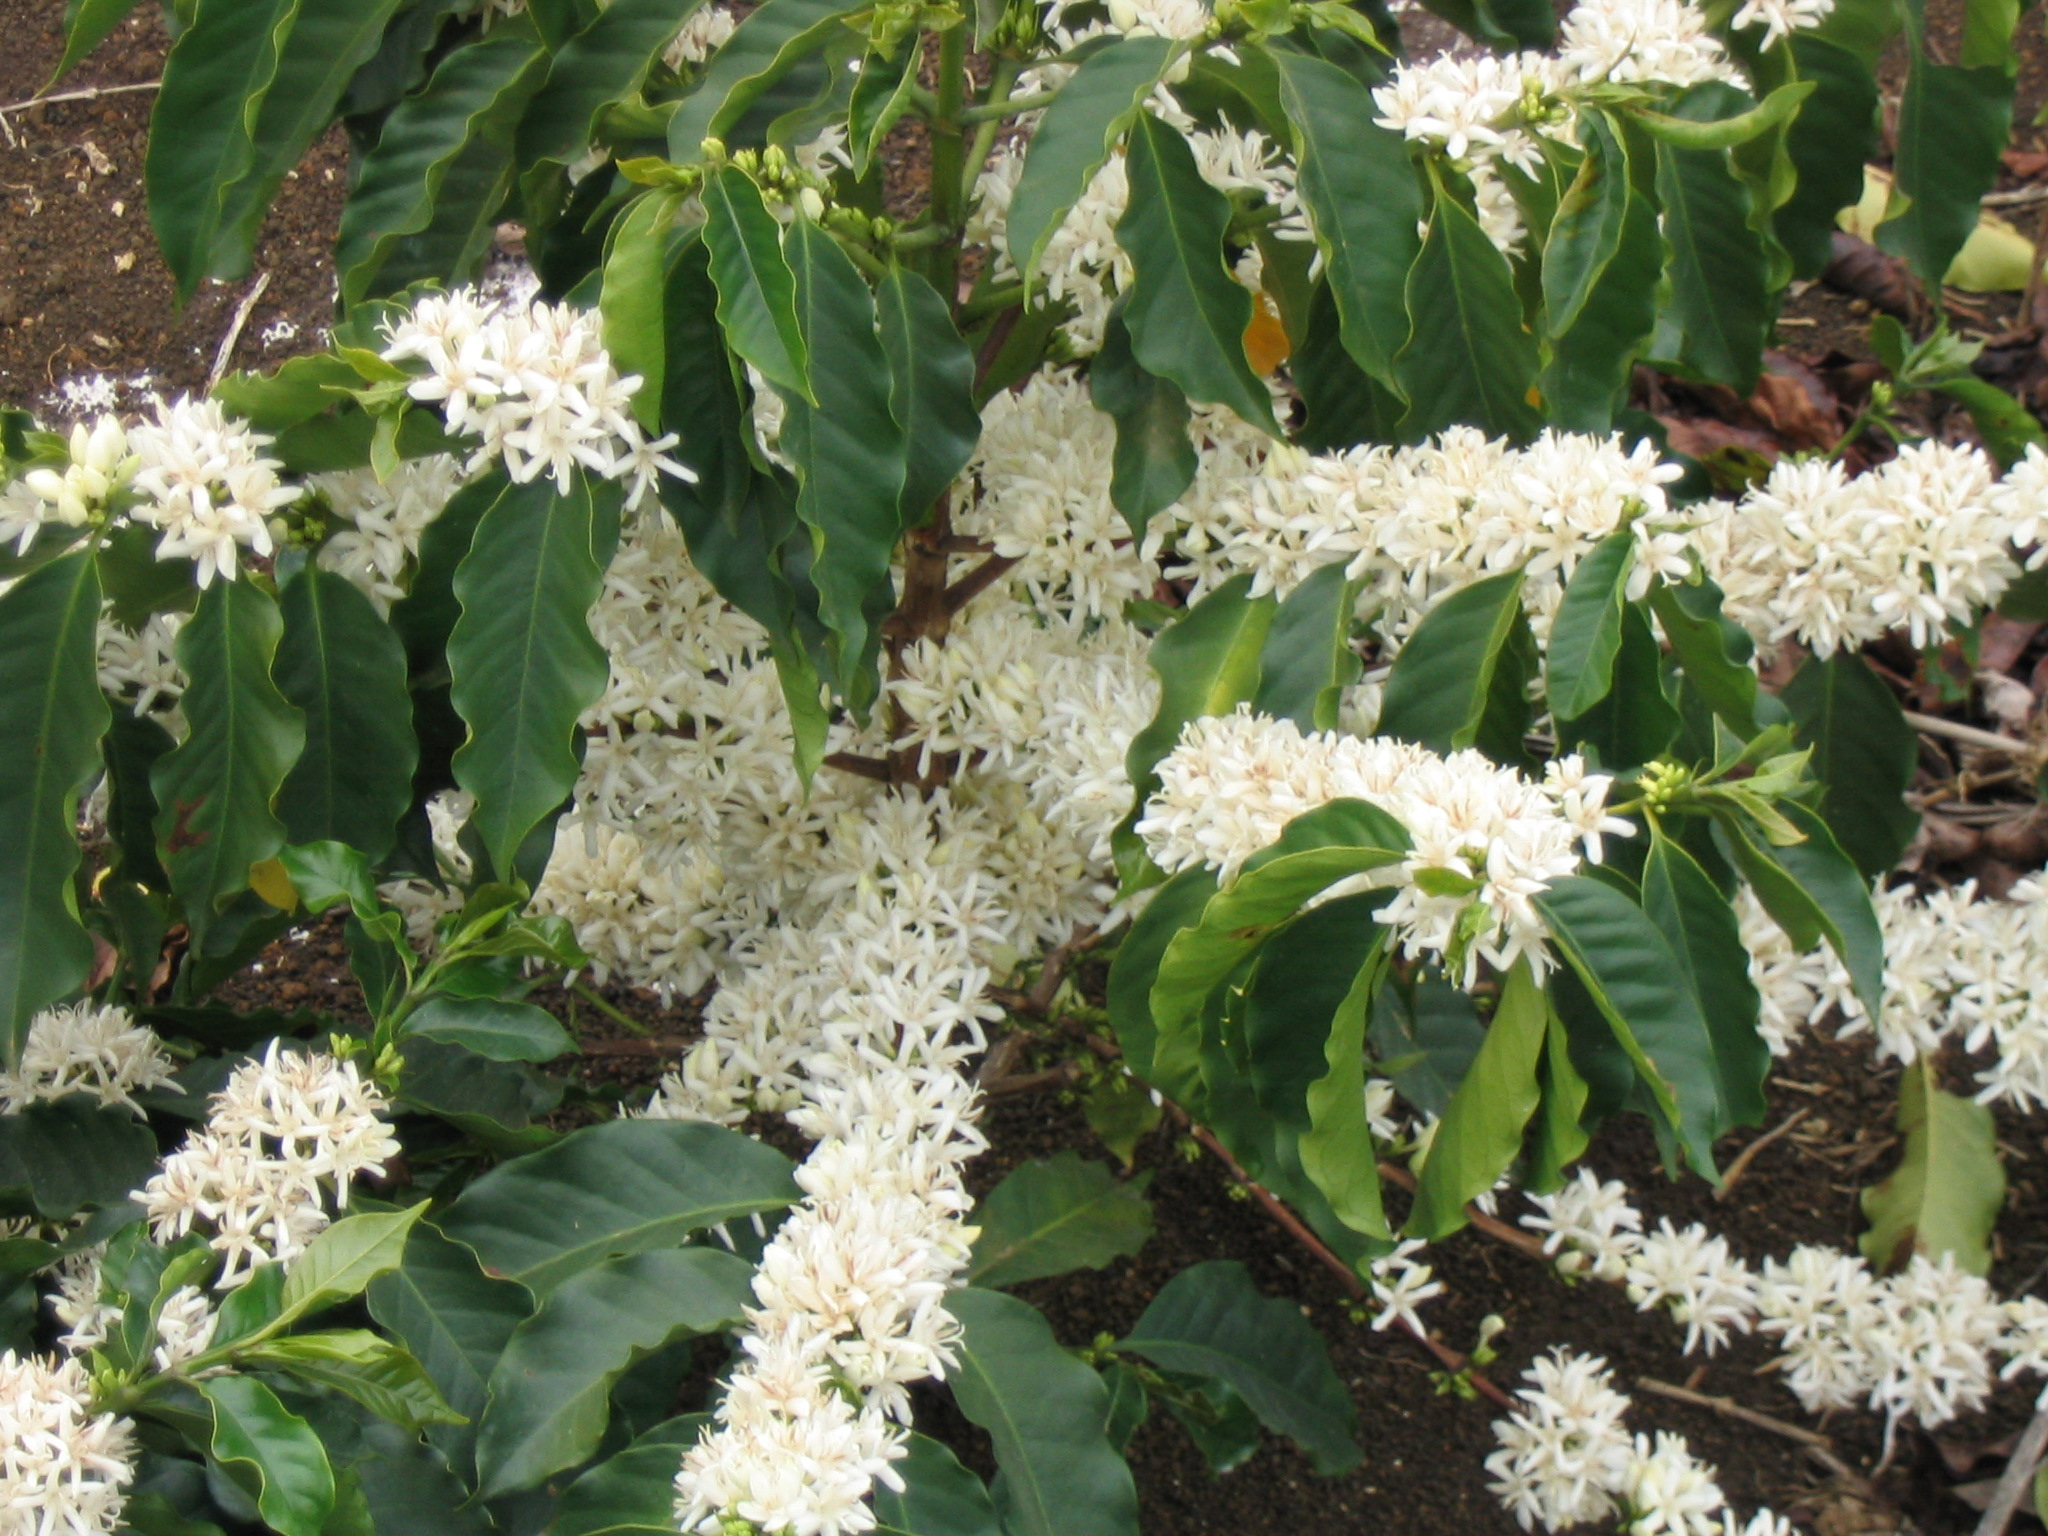 Coffea arabica images useful tropical plants flowering branches photograph by marcelo corra creative commons attribution share alike 30 mightylinksfo